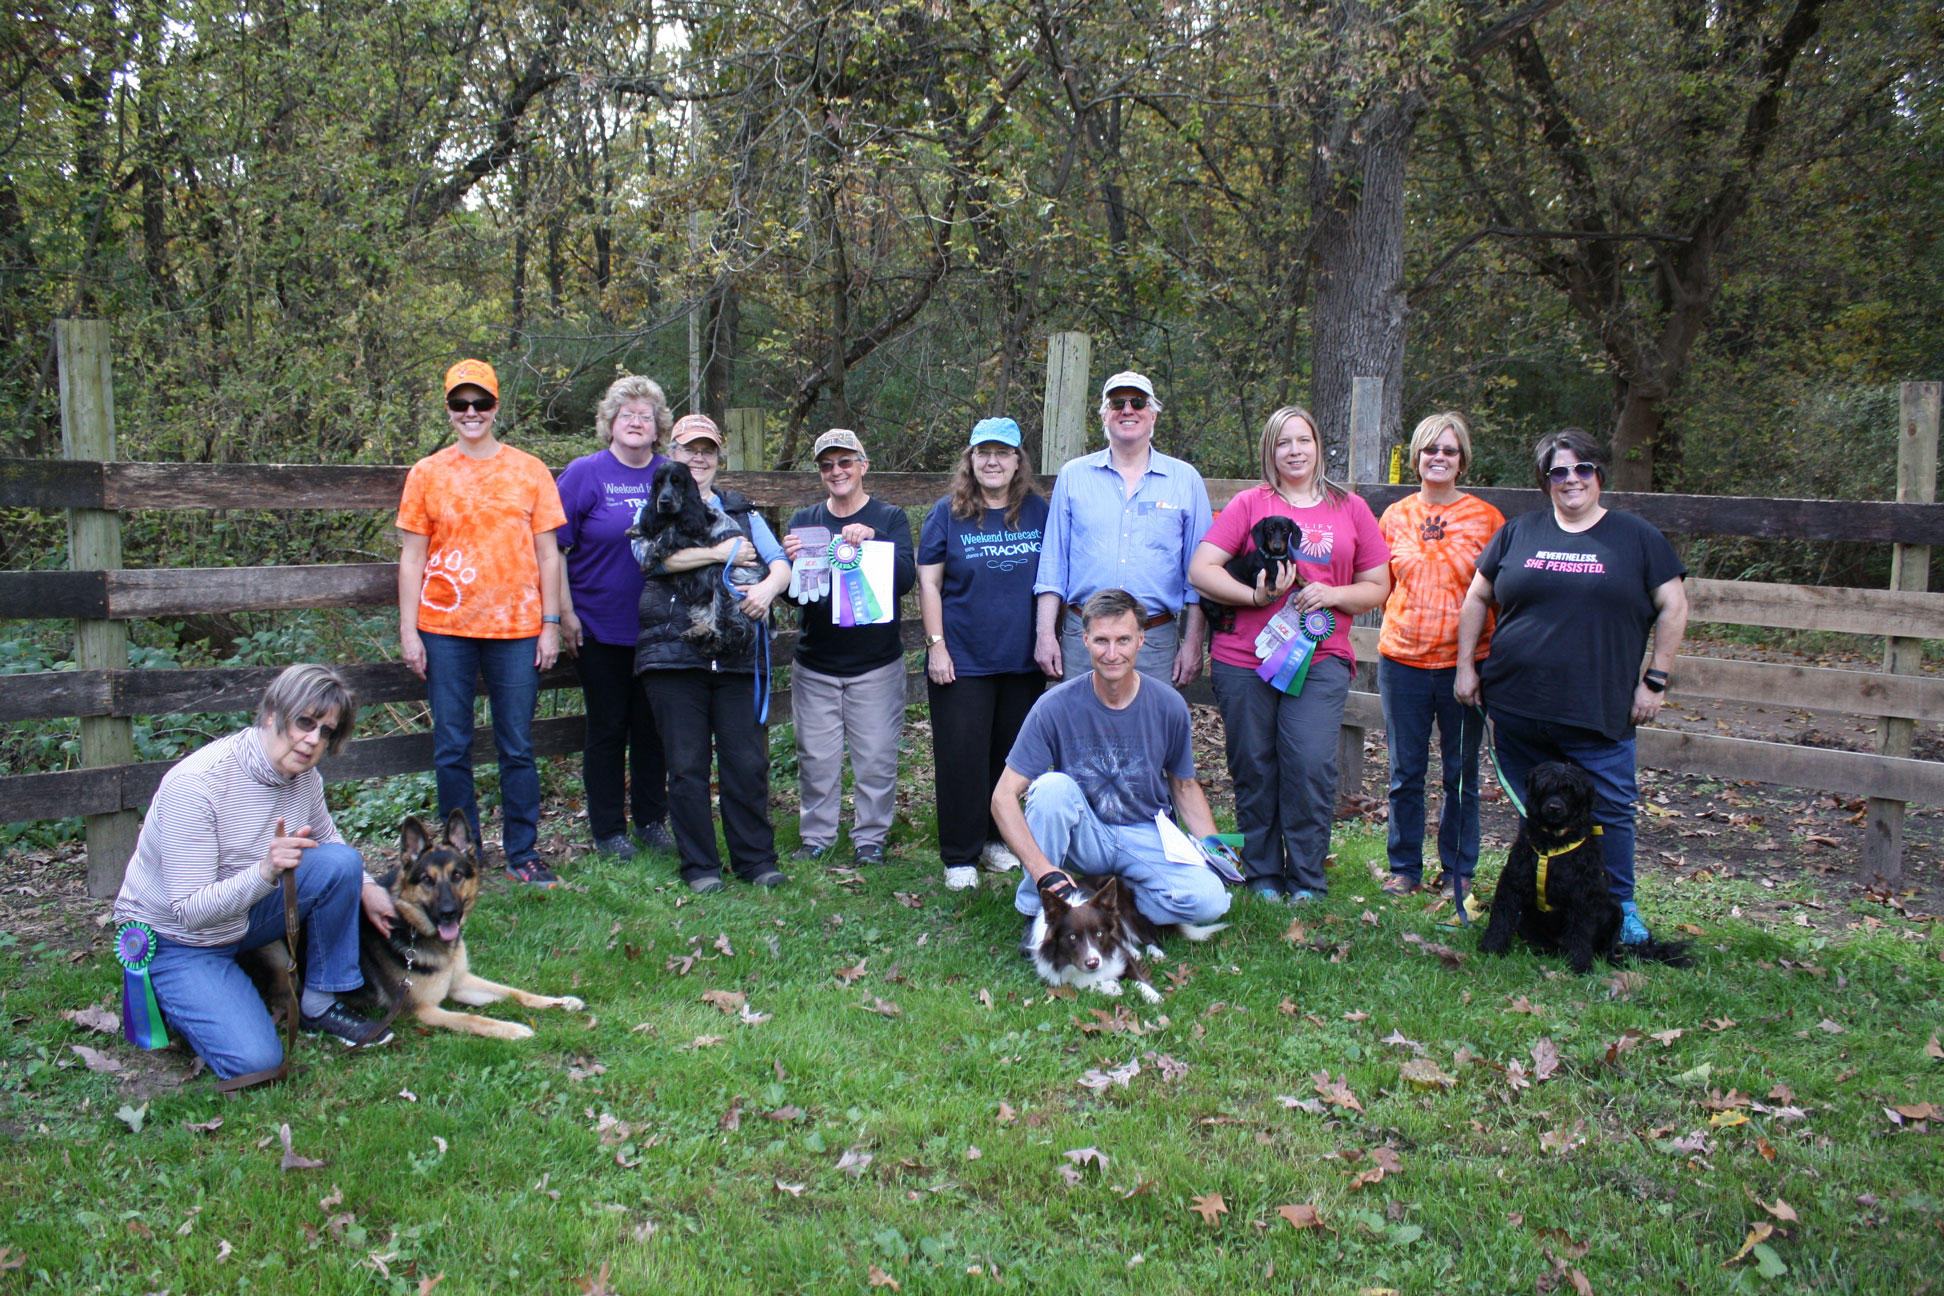 GRAC tracking test participants and volunteers. L to R: oan Andreasen-Webb & Desta, Gina Truxton, Kim Laird, Sue Wilkinson & Sennyn, Marilyn Johnson, Marty Siegrist, Charles Gibson, Pete Ostlund & Zachariah, Linda Alkema & Prince, Ann Newell, Brenda Young & Allegiance Let Me Take a Selfie